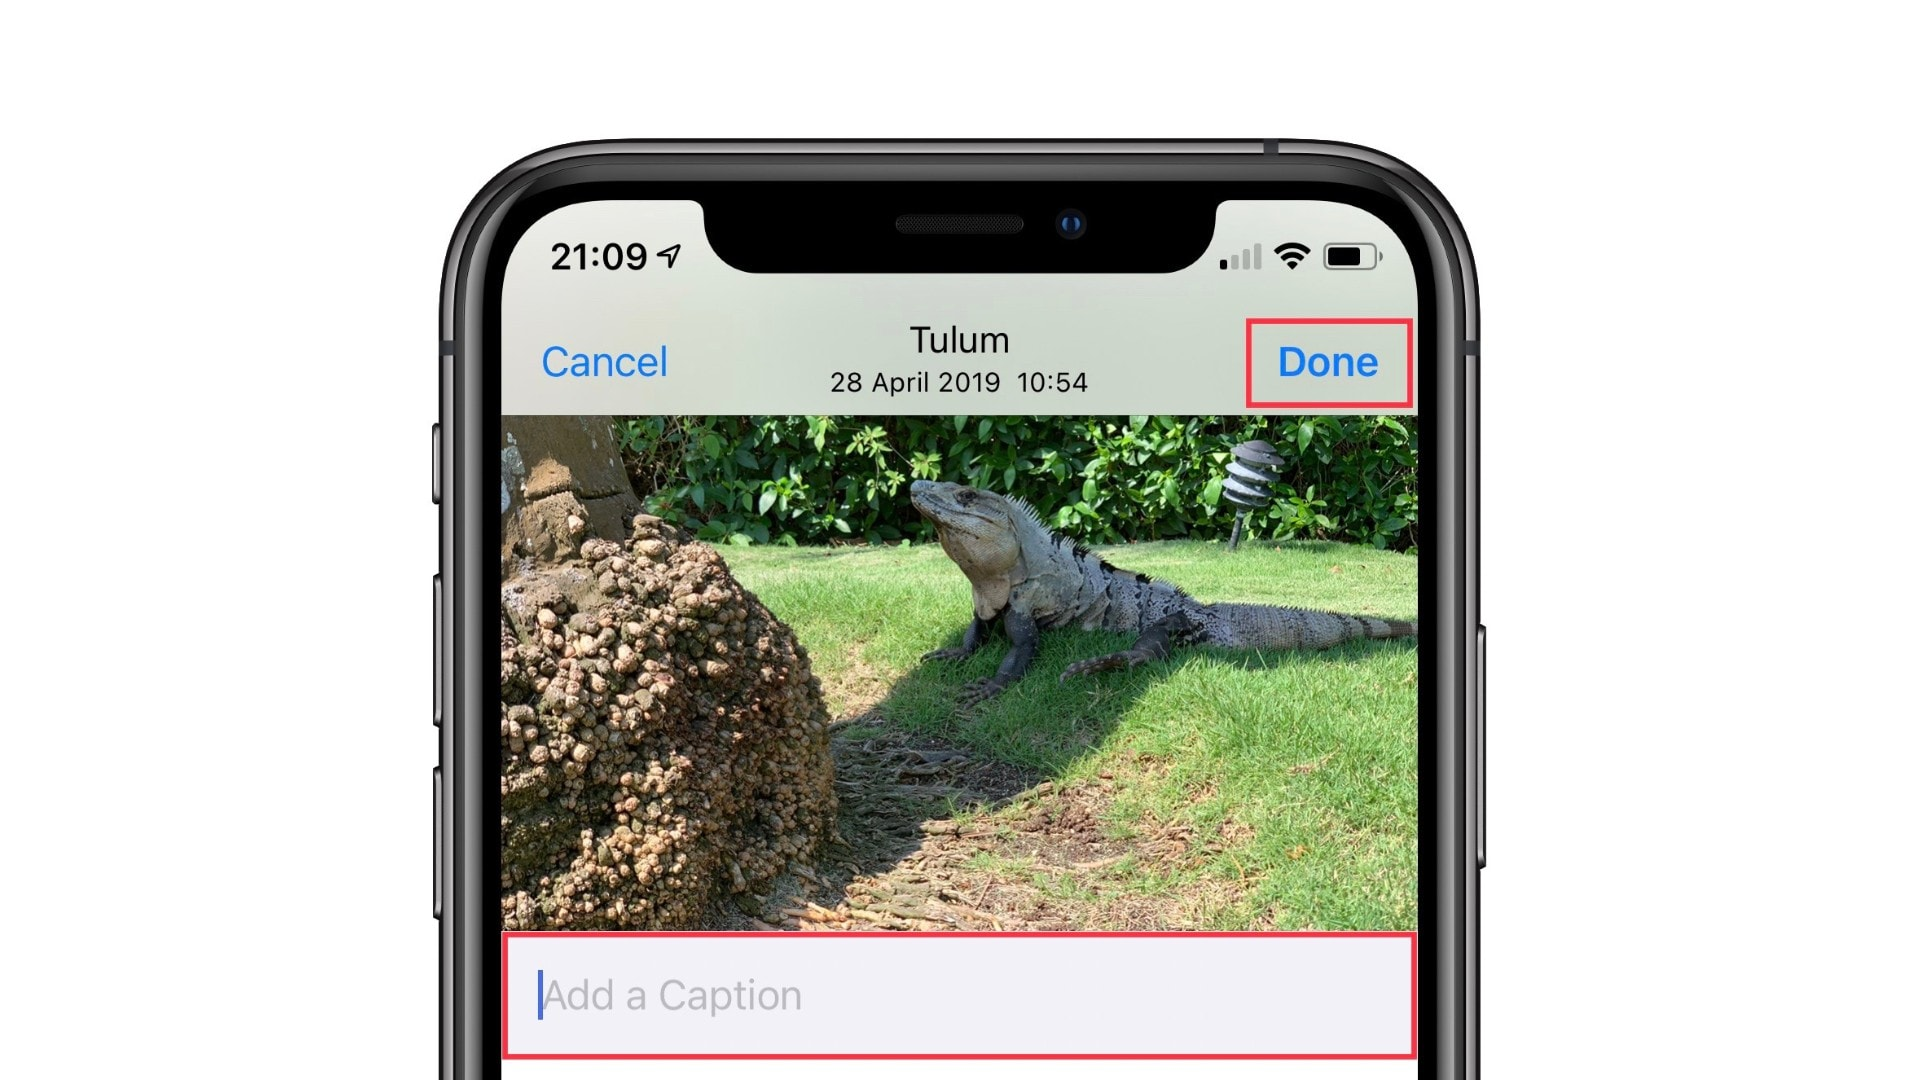 How to add captions to photos in iOS 14